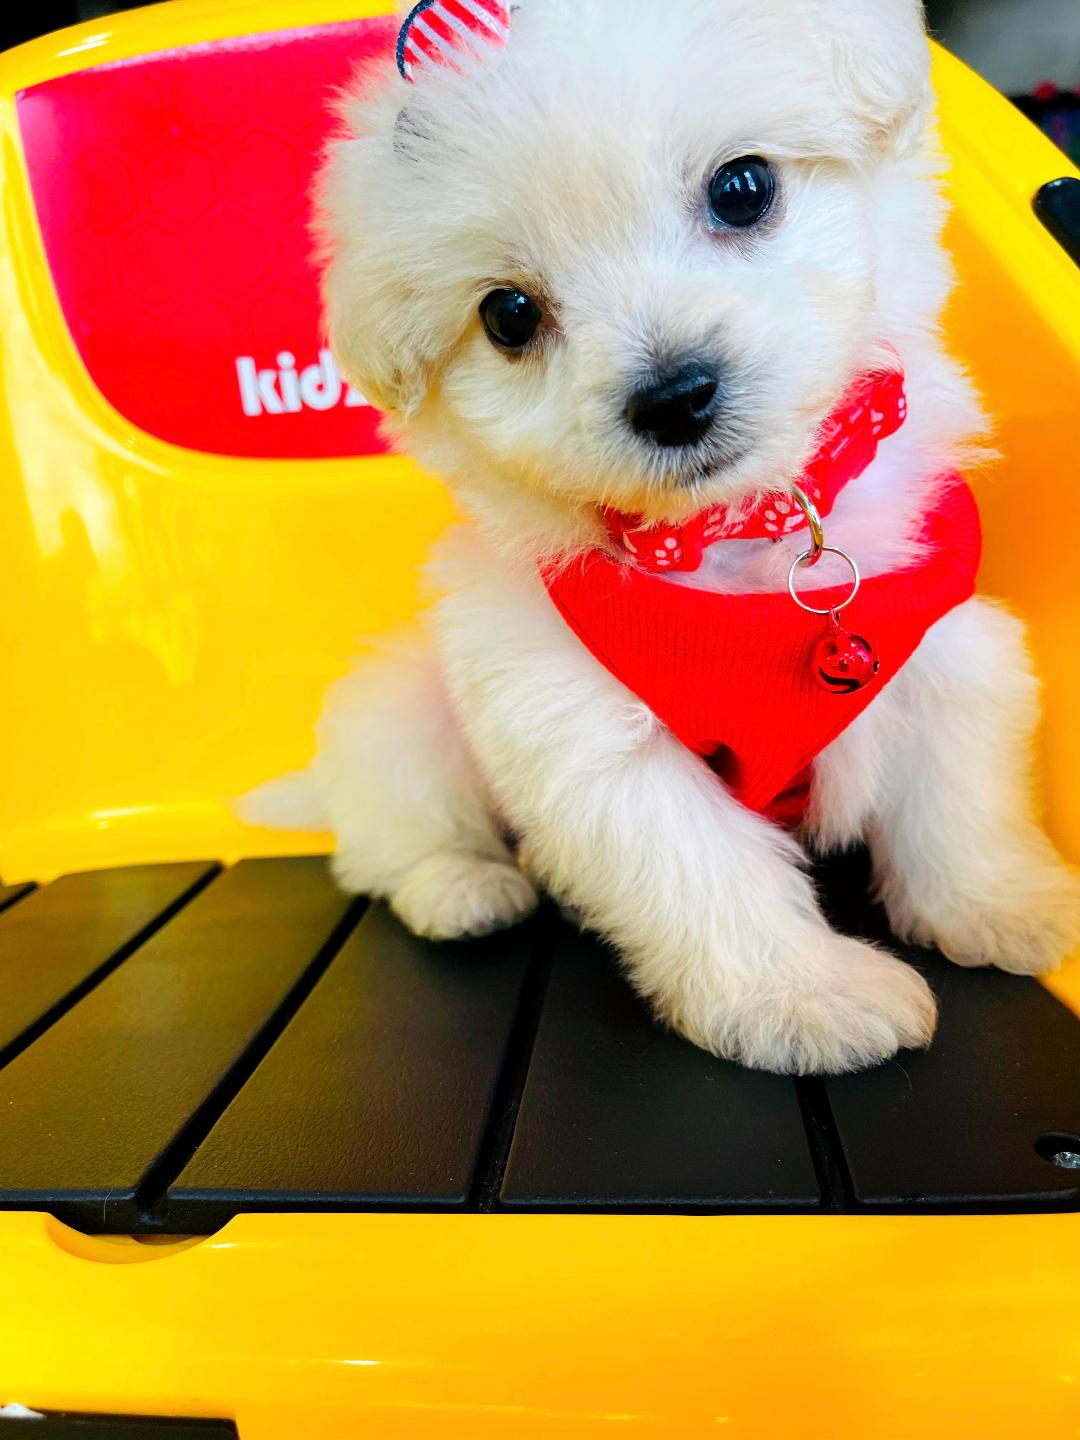 SweetBear - CKC male Maltipoo puppy for sale at Houston, Texas